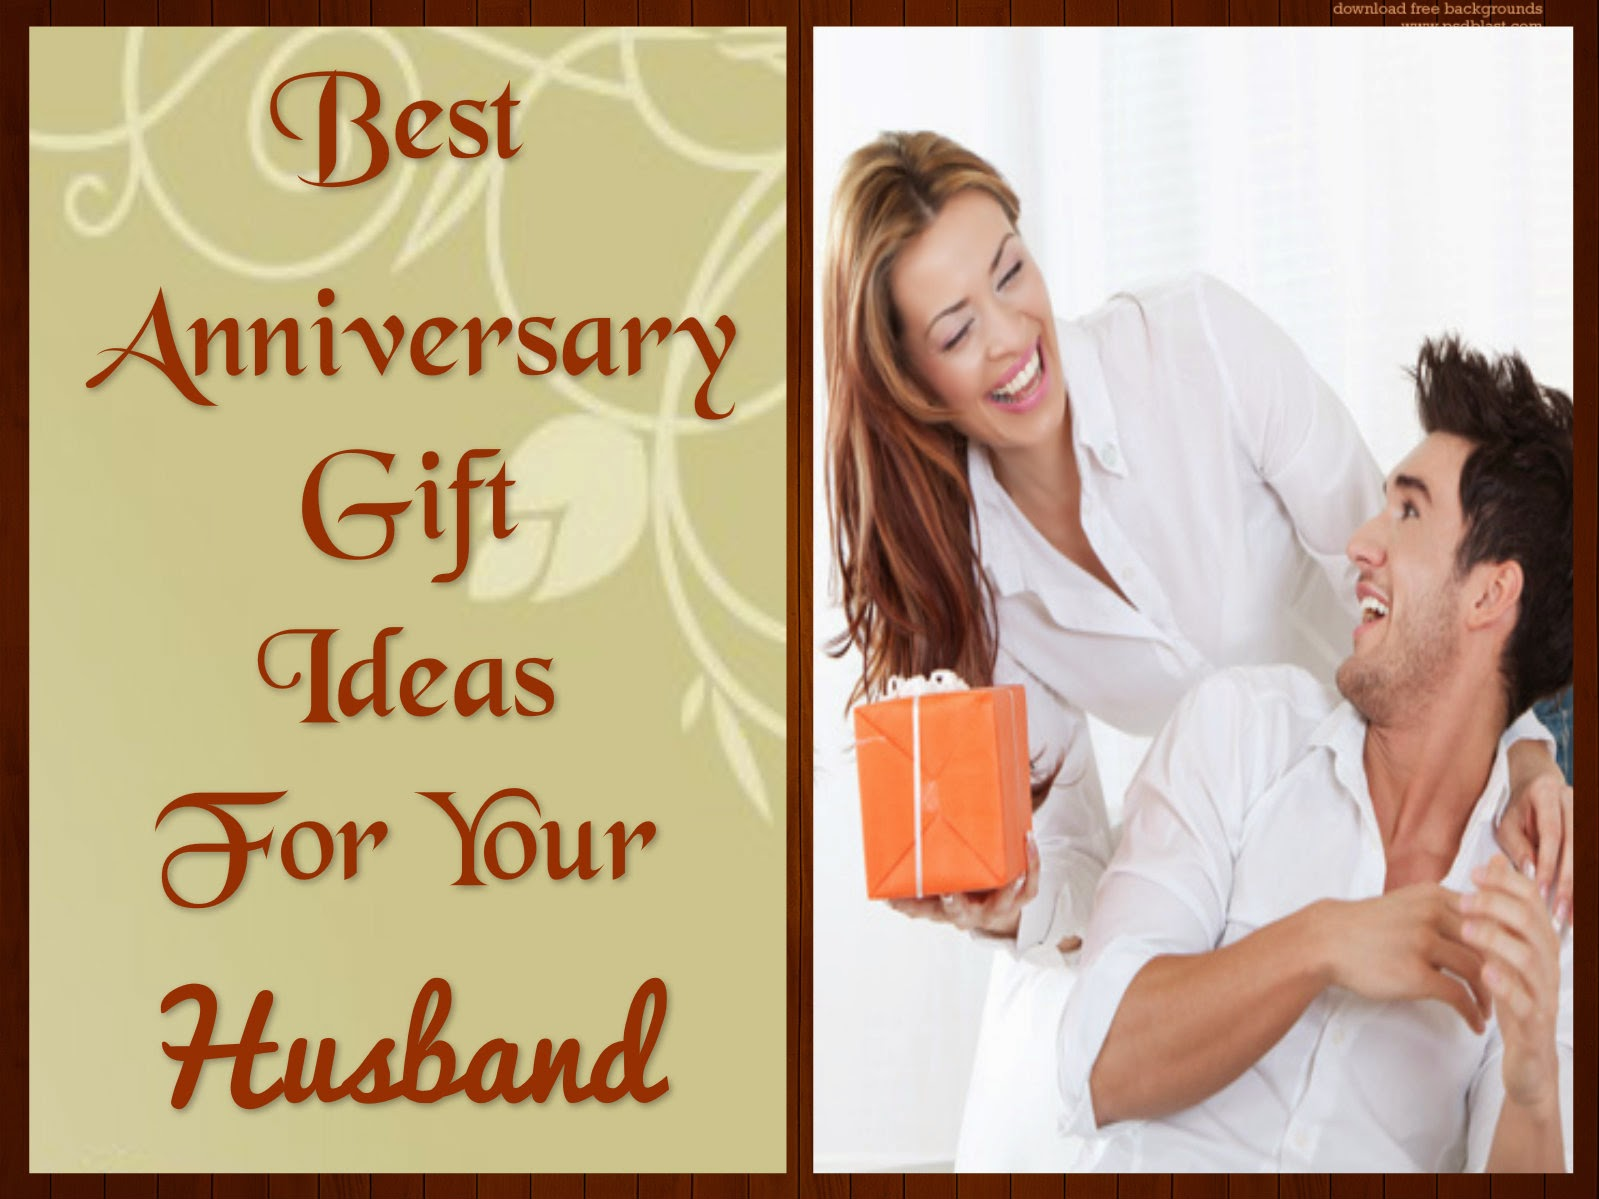 Wedding Gift Ideas For Husband : Wedding Anniversary Gifts: Best Anniversary Gift Ideas For Your ...